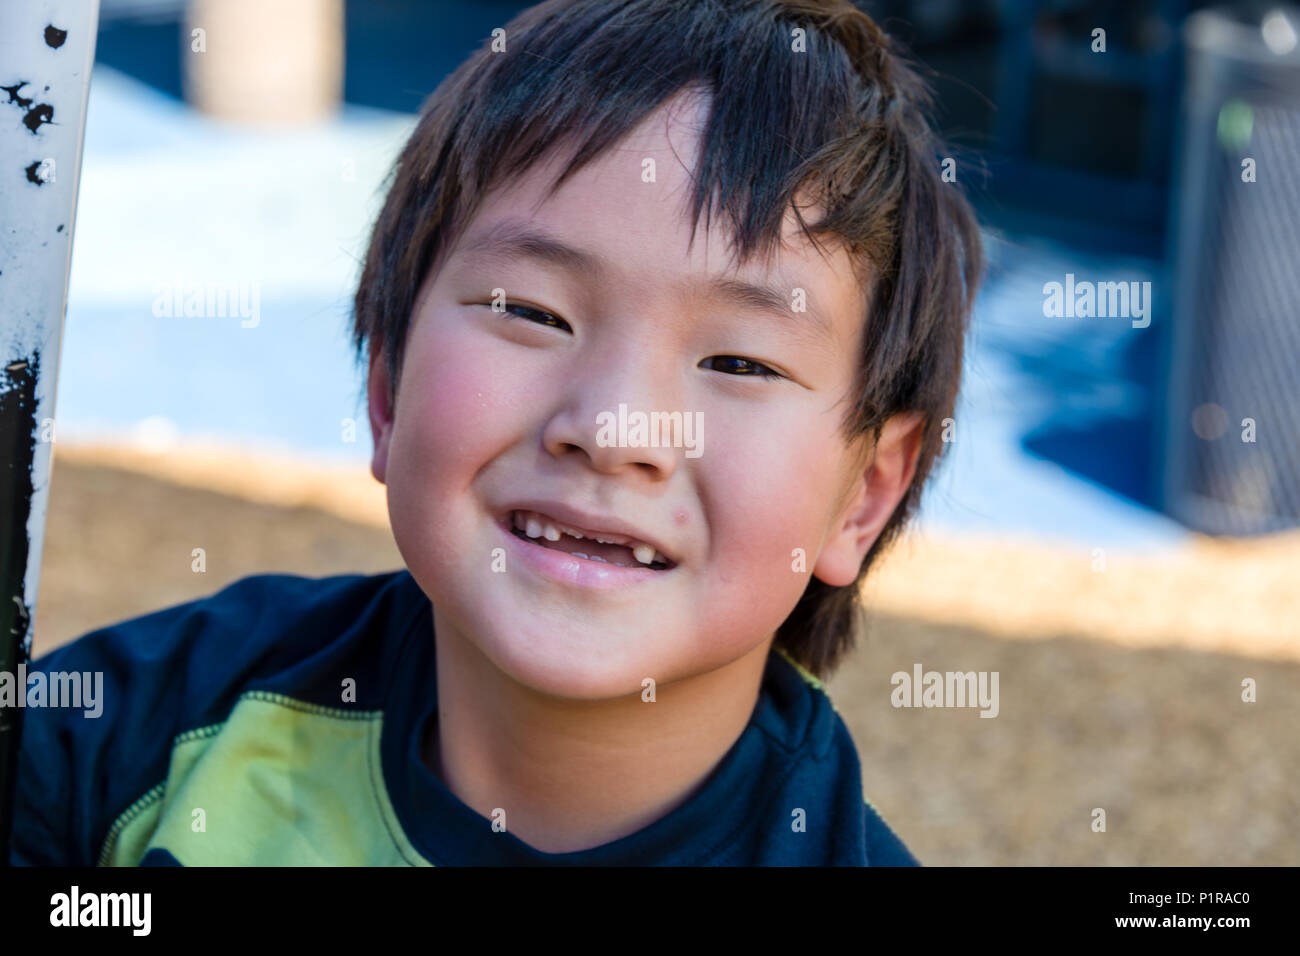 Johnny's Toothless Grin - Stock Image